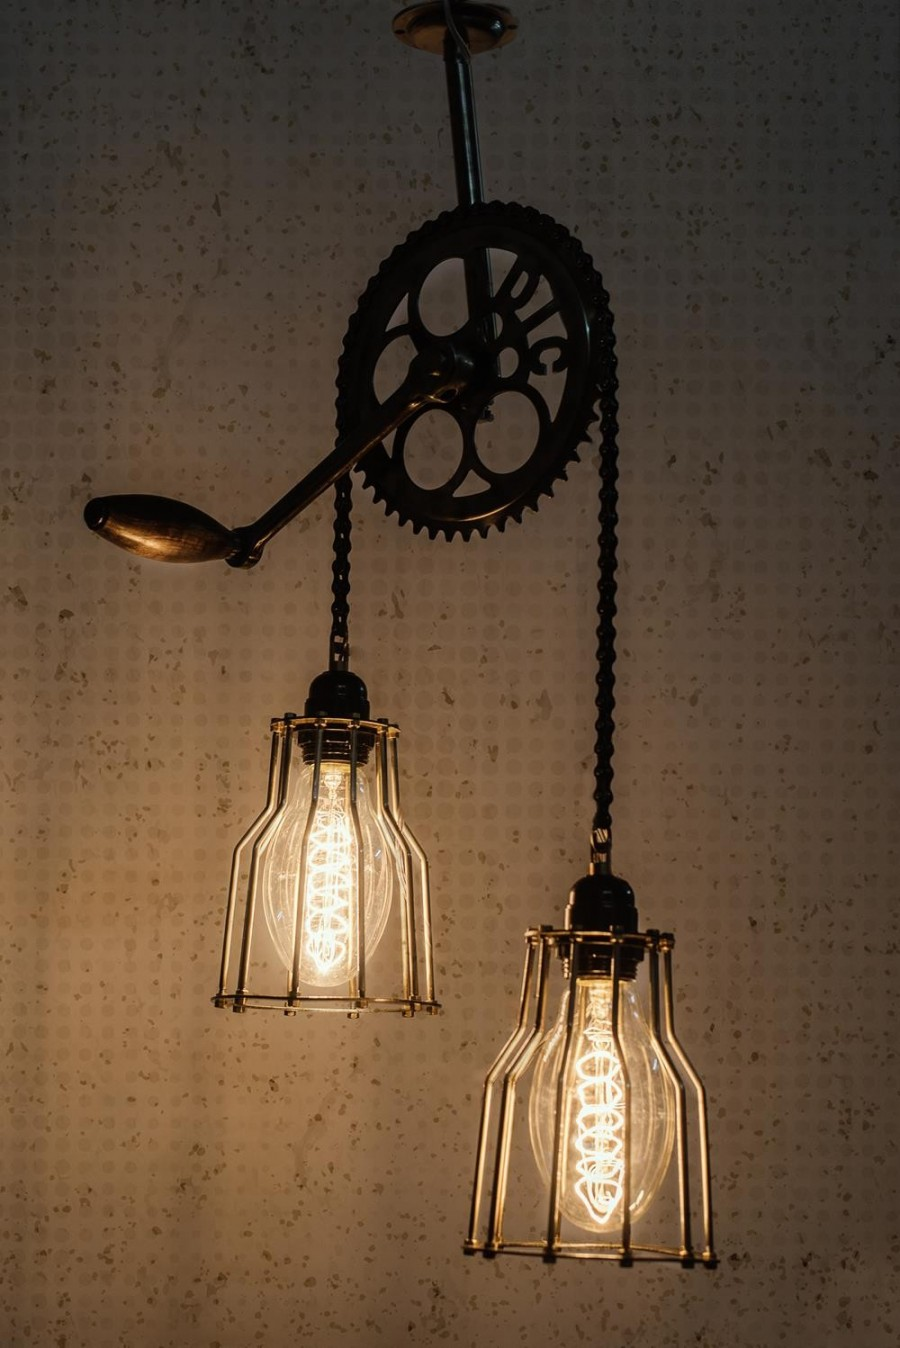 Buy CYCLE GEAR CHAIN CEILING LIGHT Online